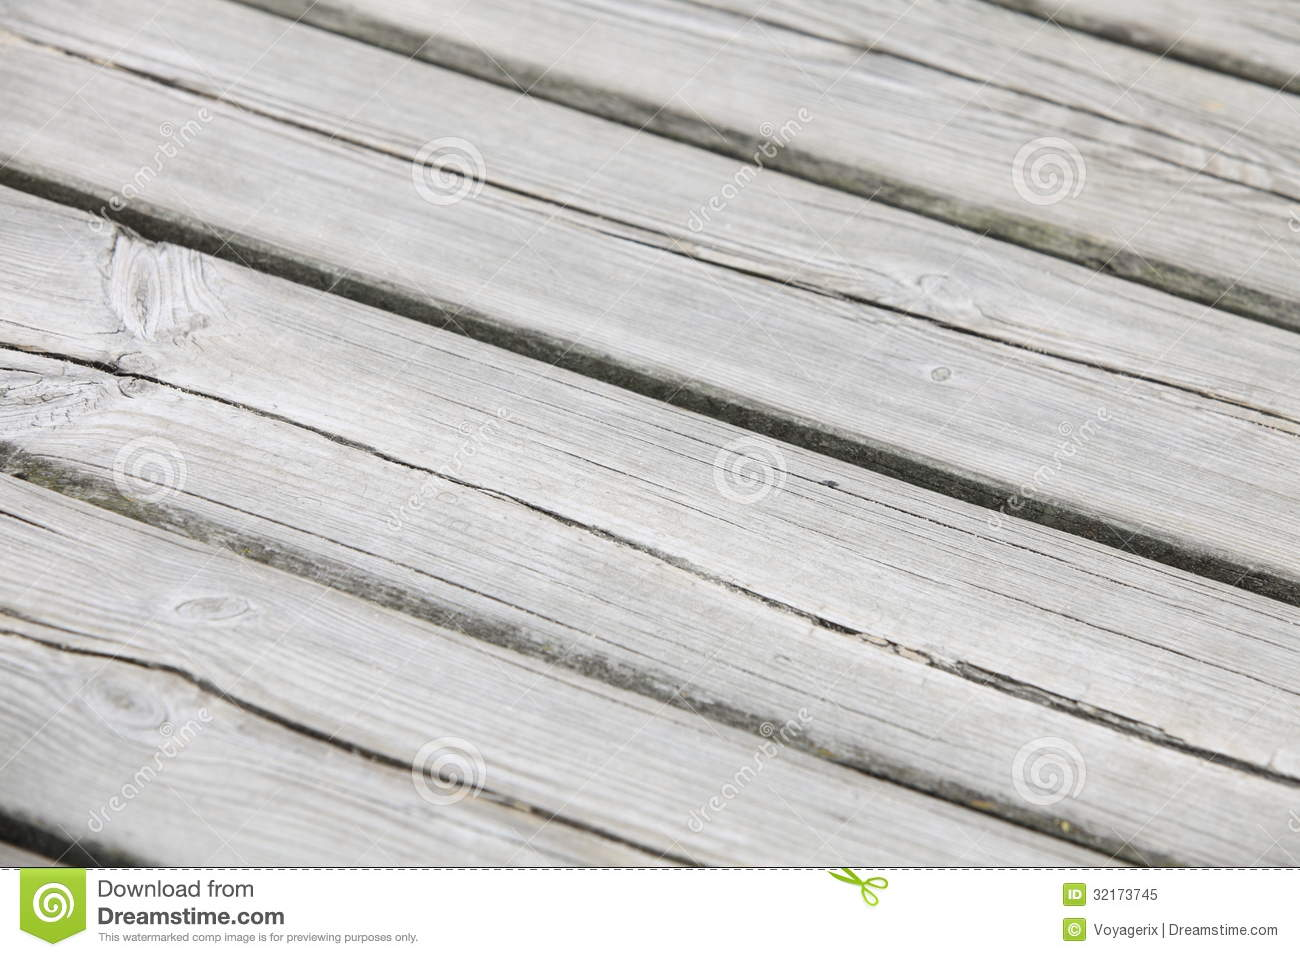 White Gray Wood Background Royalty Free Stock Photo - Image: 32173745: becuo.com/old-white-wood-background